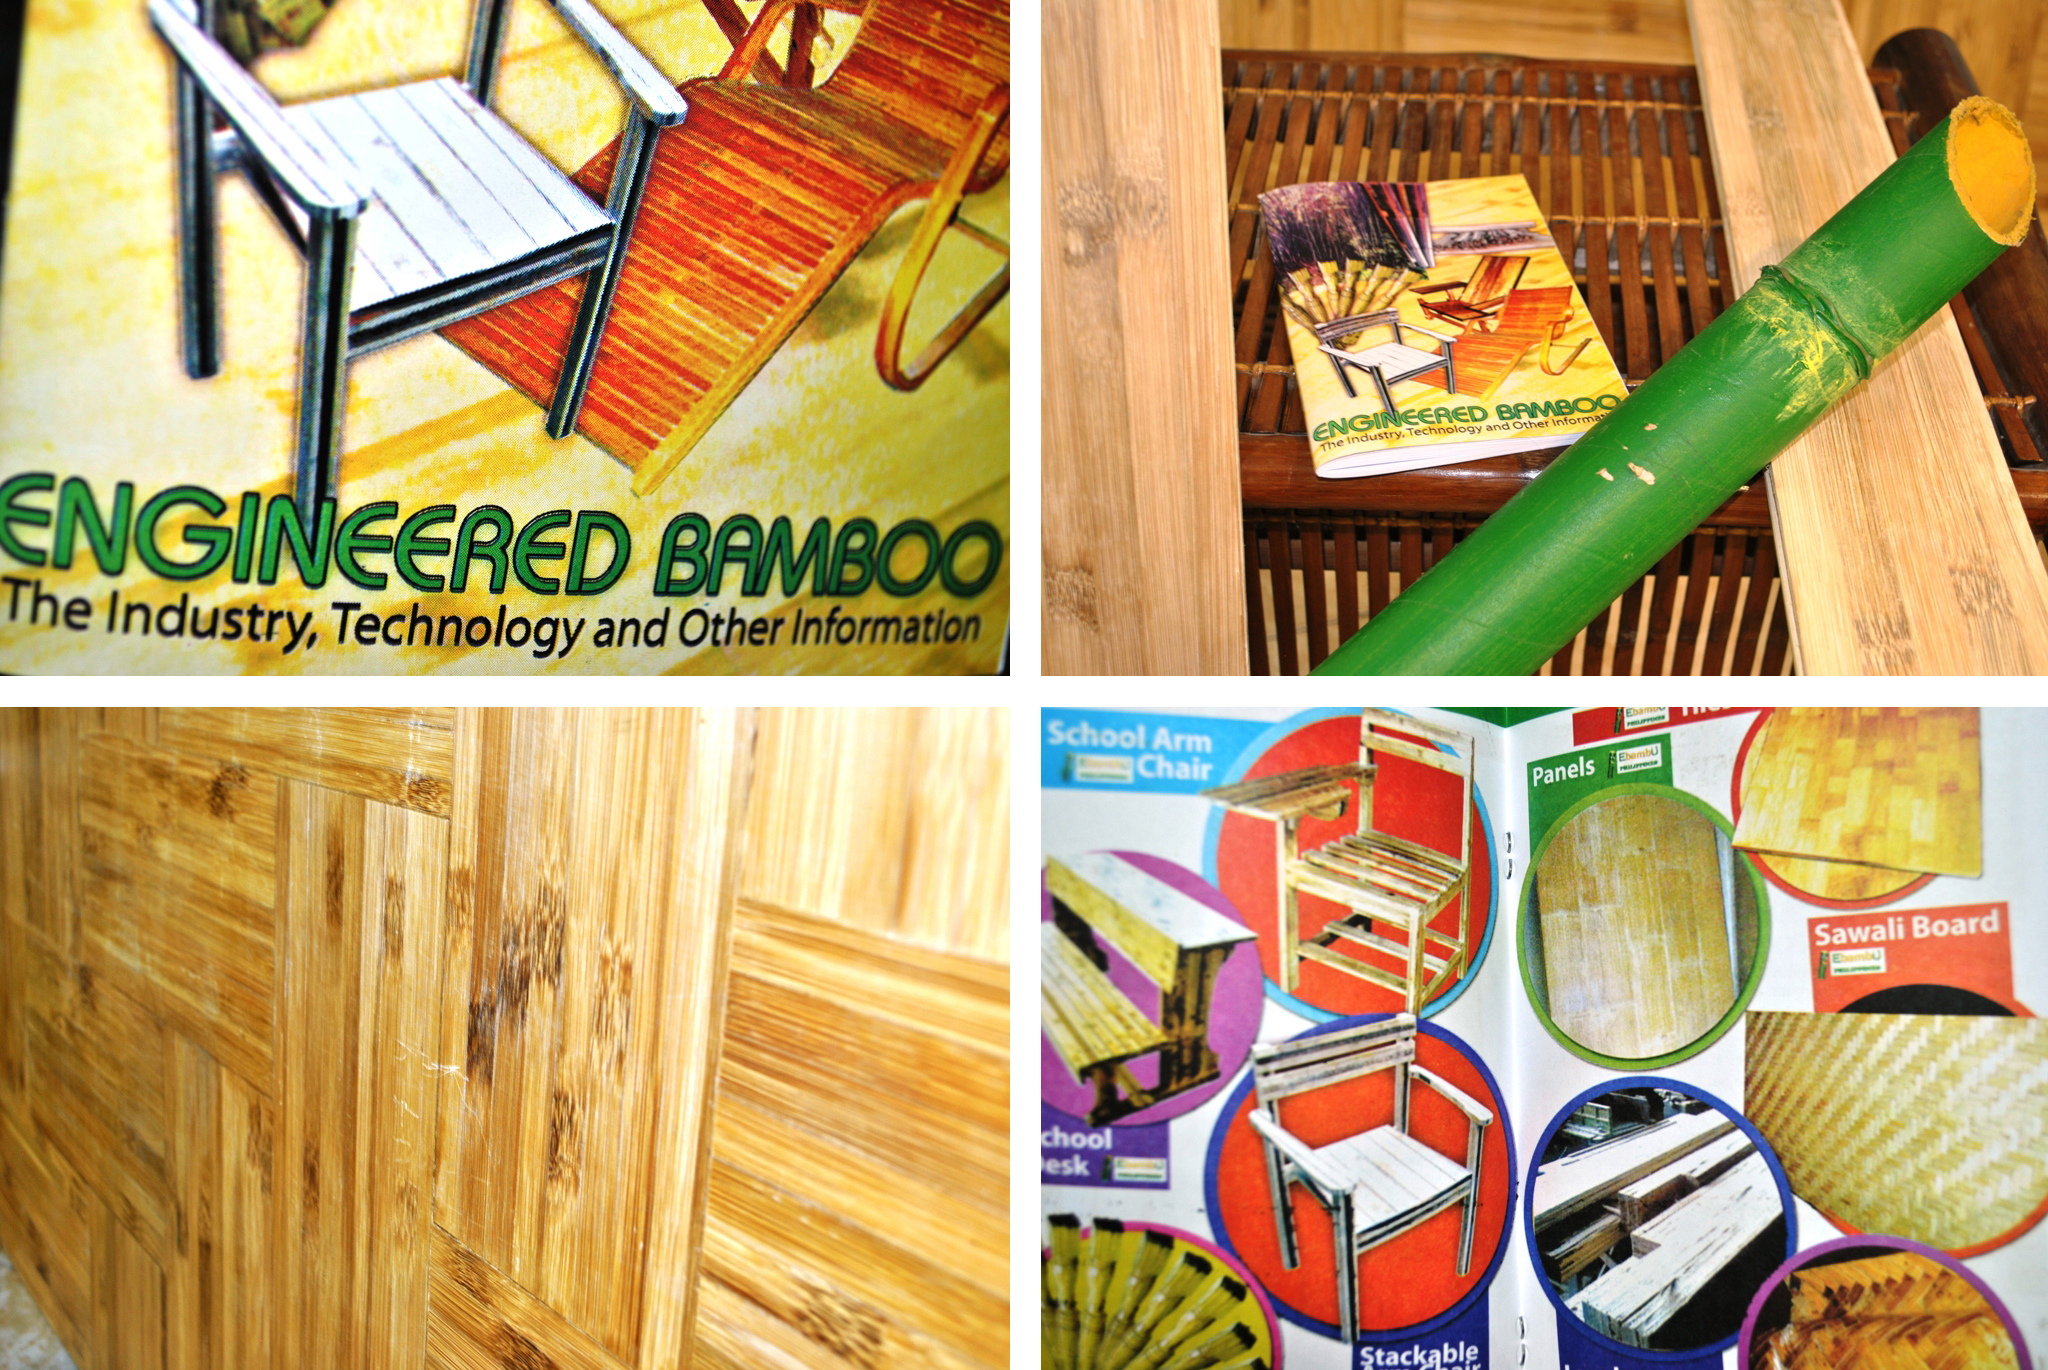 Engineered Bamboo Arts and Craft Showcase